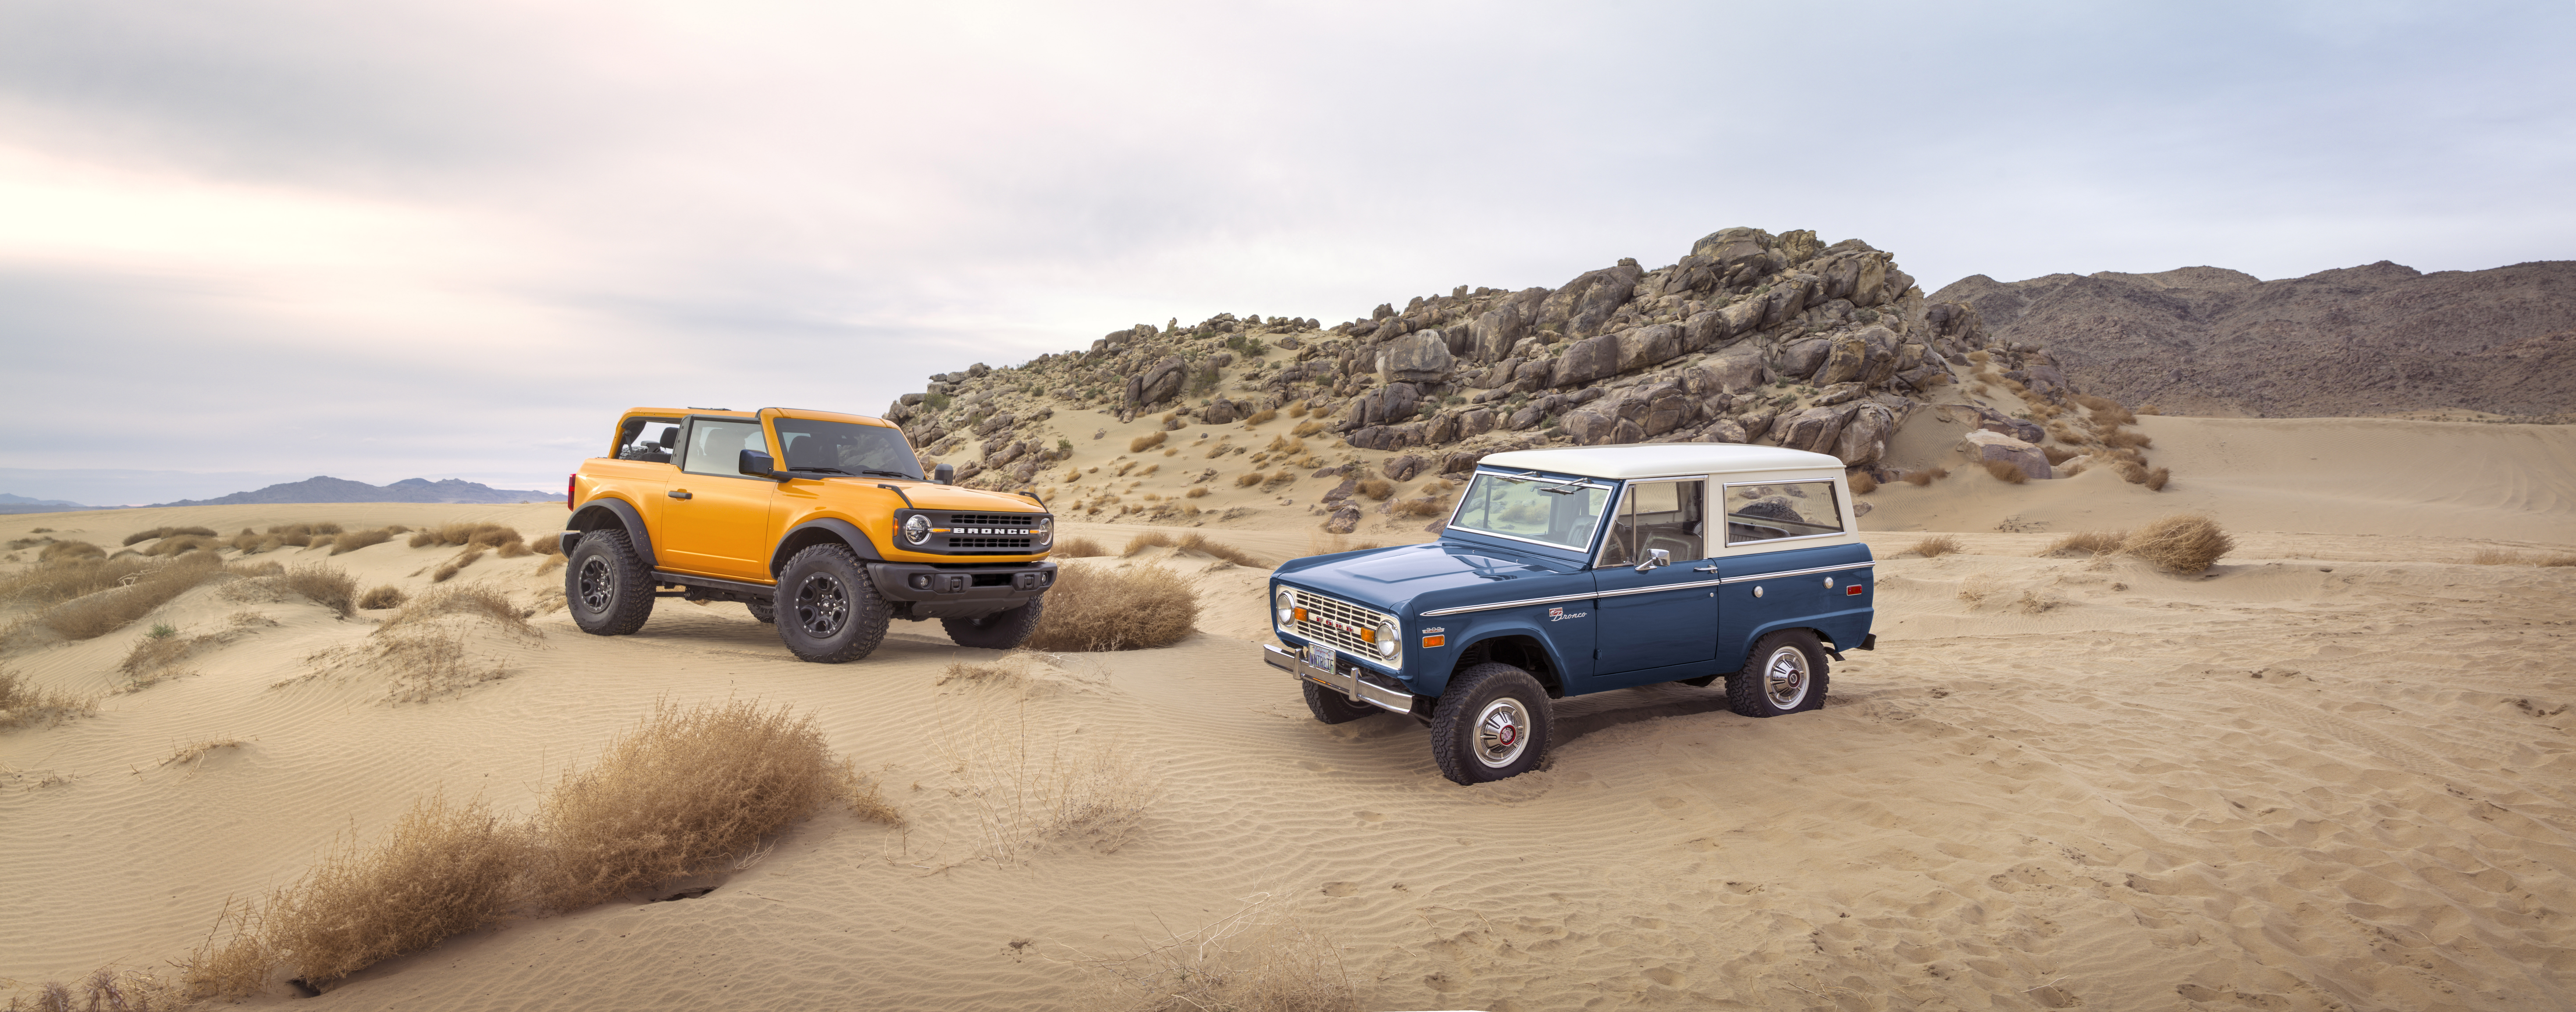 Sixth-generation Ford Bronco debuts – two EcoBoost petrols, removable panels and washable interior Image #1145042